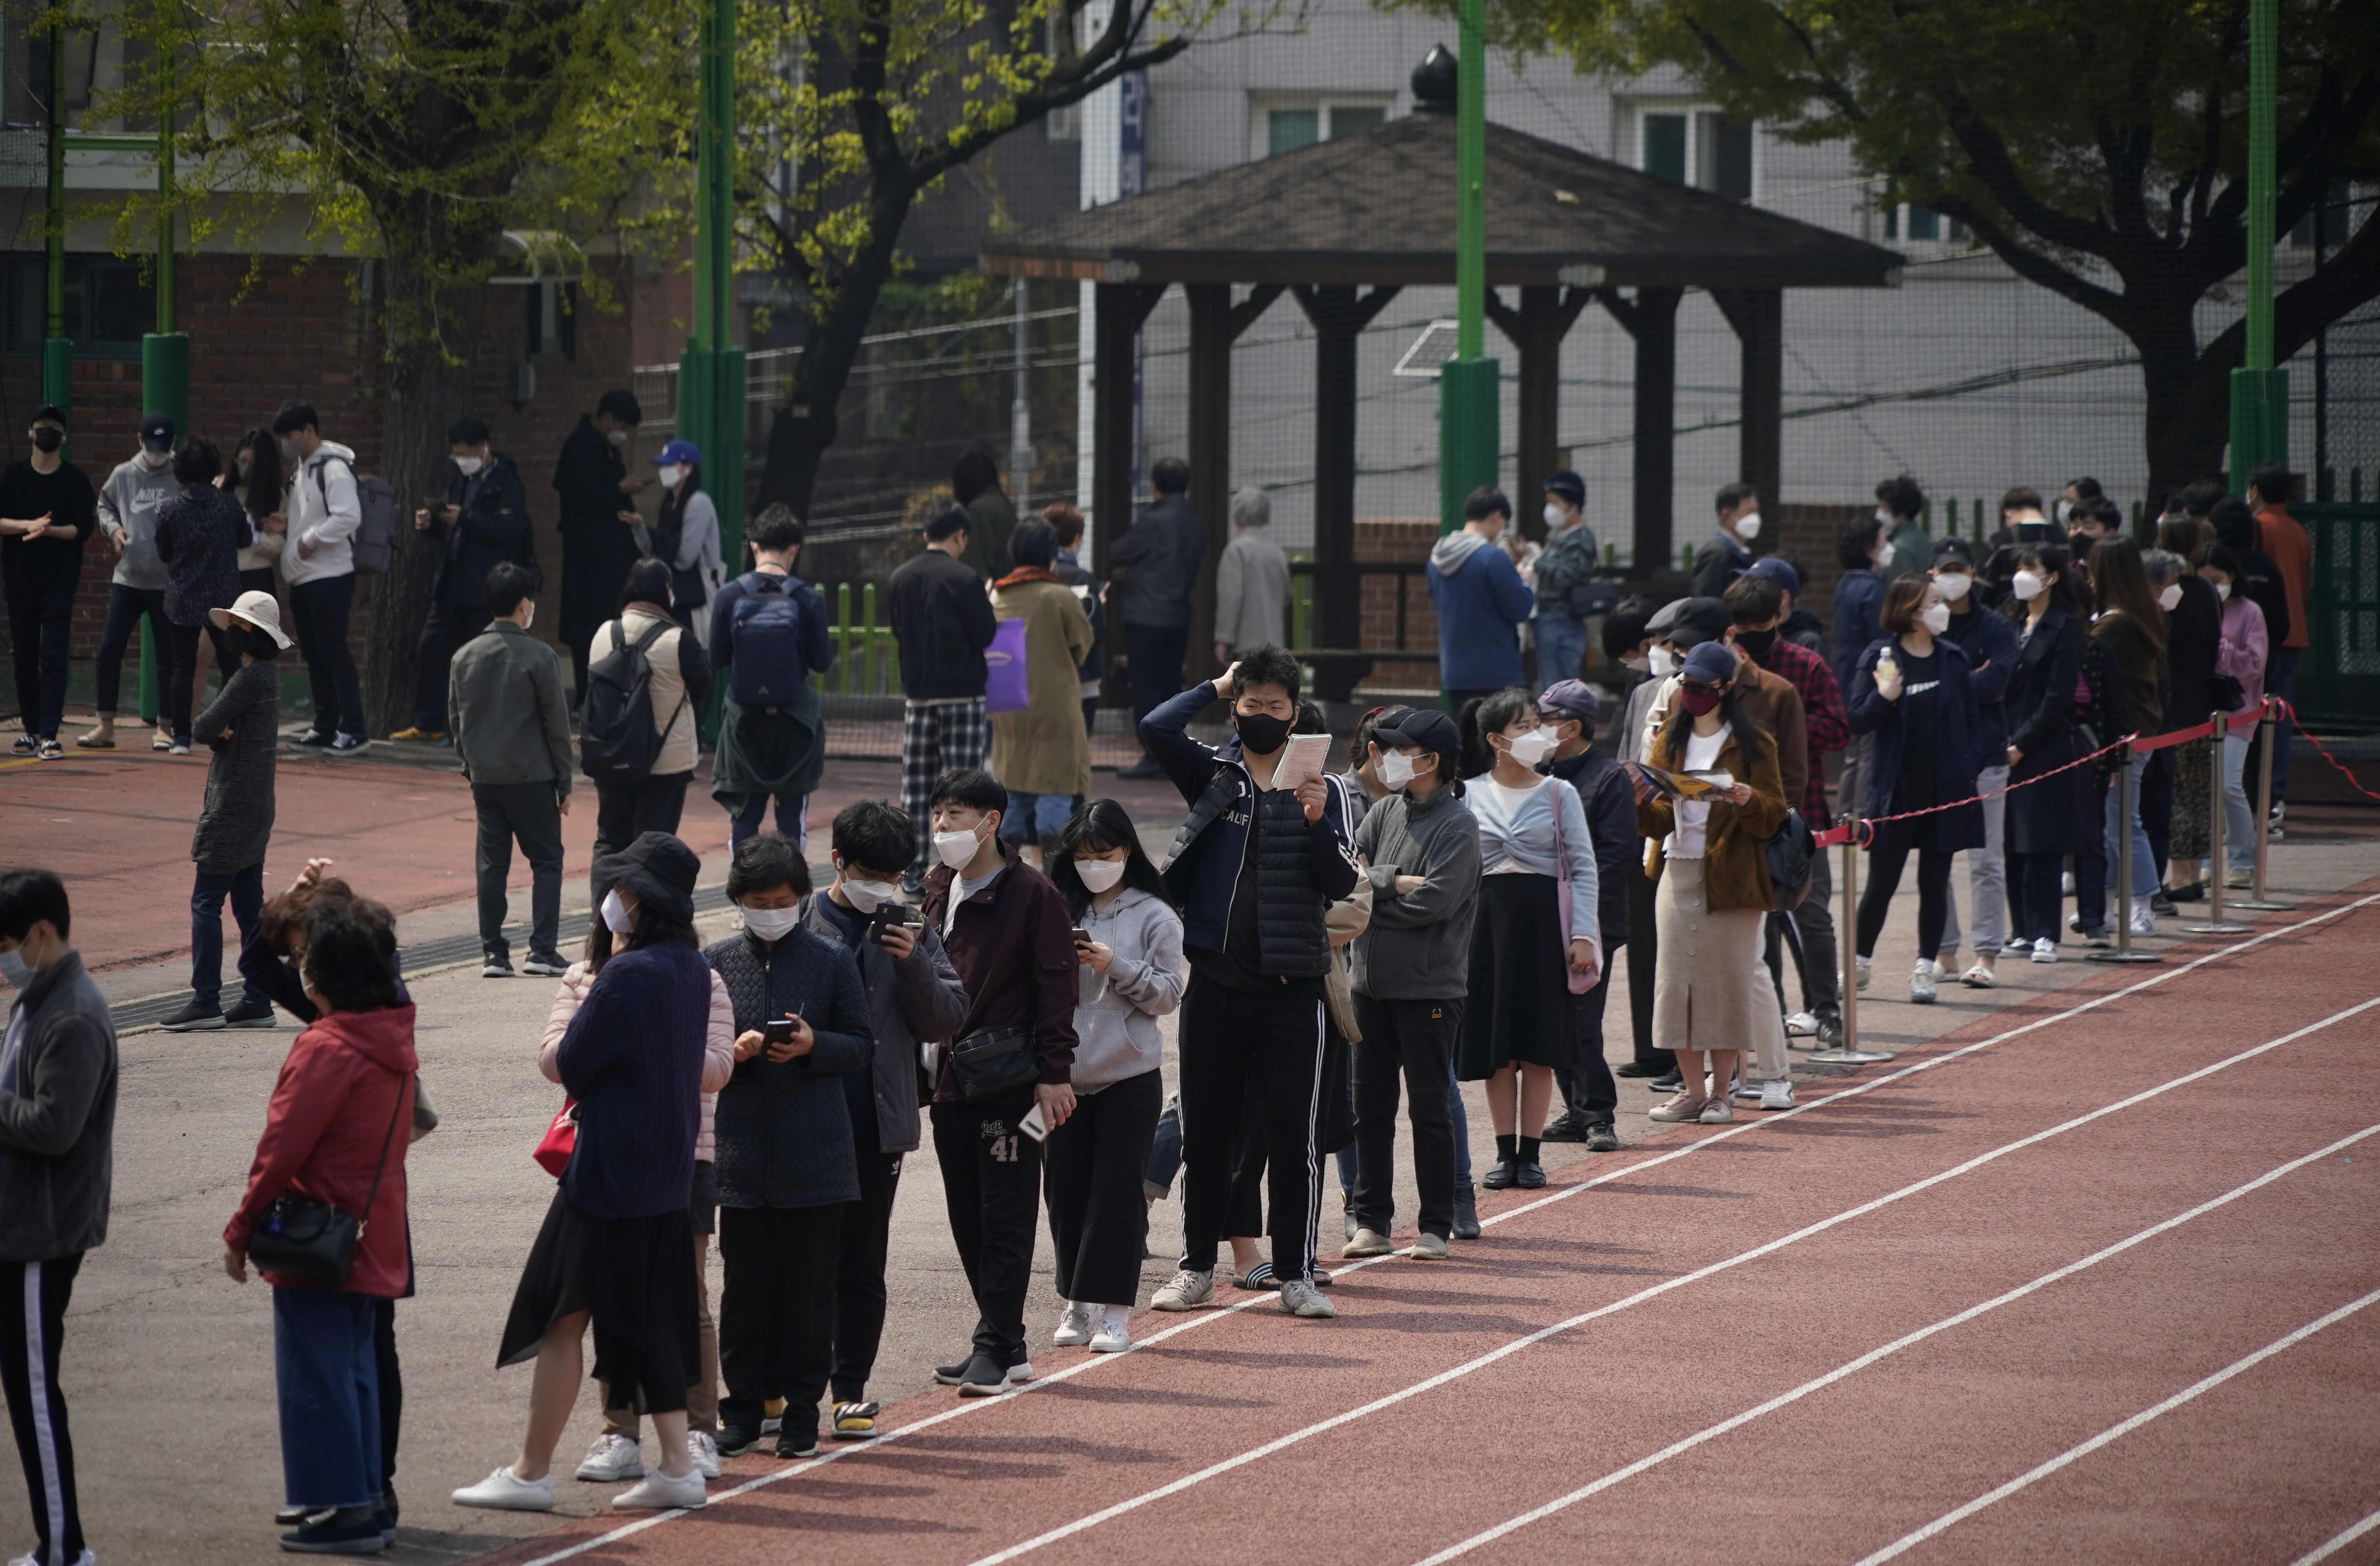 Voters wearing face masks in an effort to prevent the spread of the coronavirus disease (COVID19) wait in line to cast their ballots at a polling station during the parliamentary election in Seoul, South Korea, on April 15, 2020. Photo; Reuters